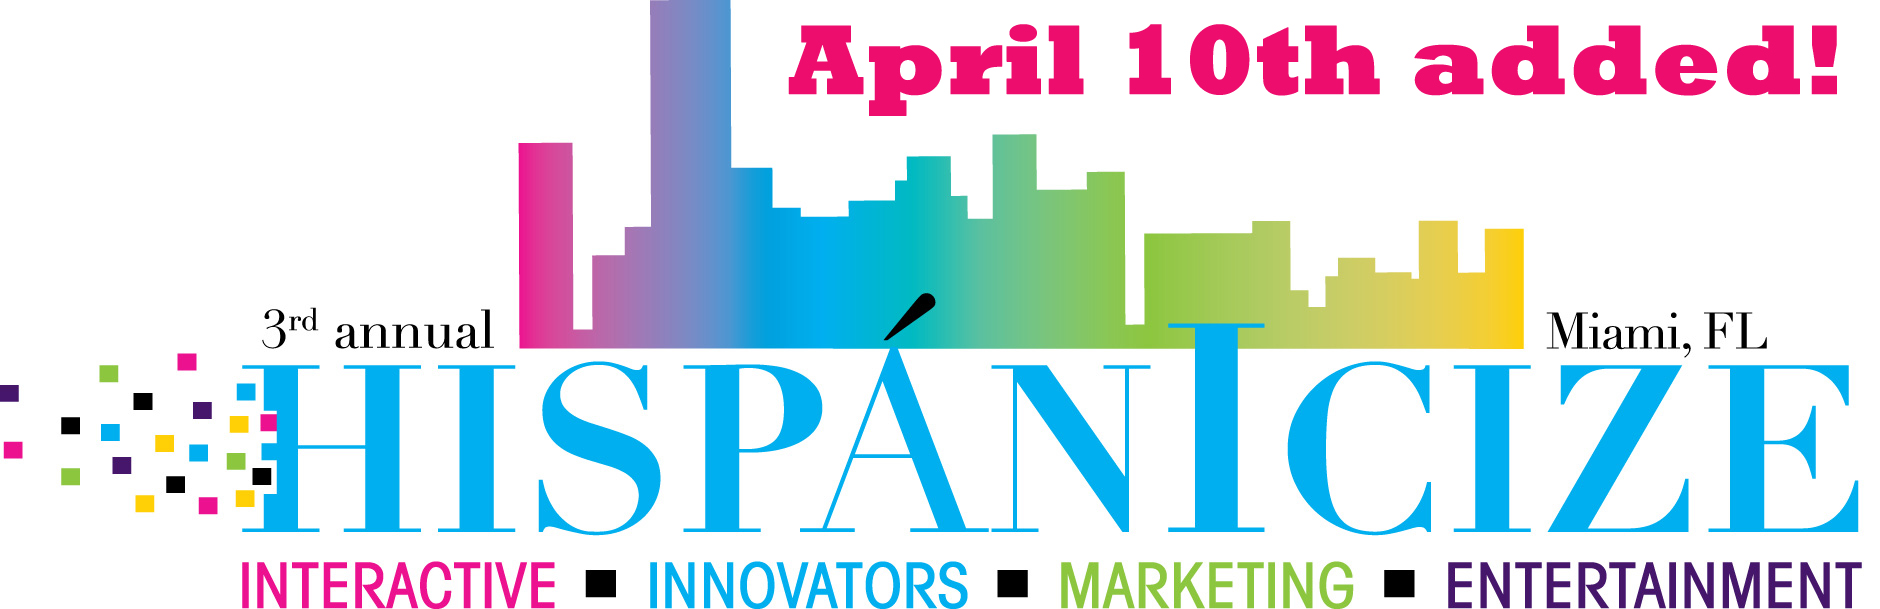 Hispanicize 2012 adds fourth full day, April 10, to national Latino trends event program